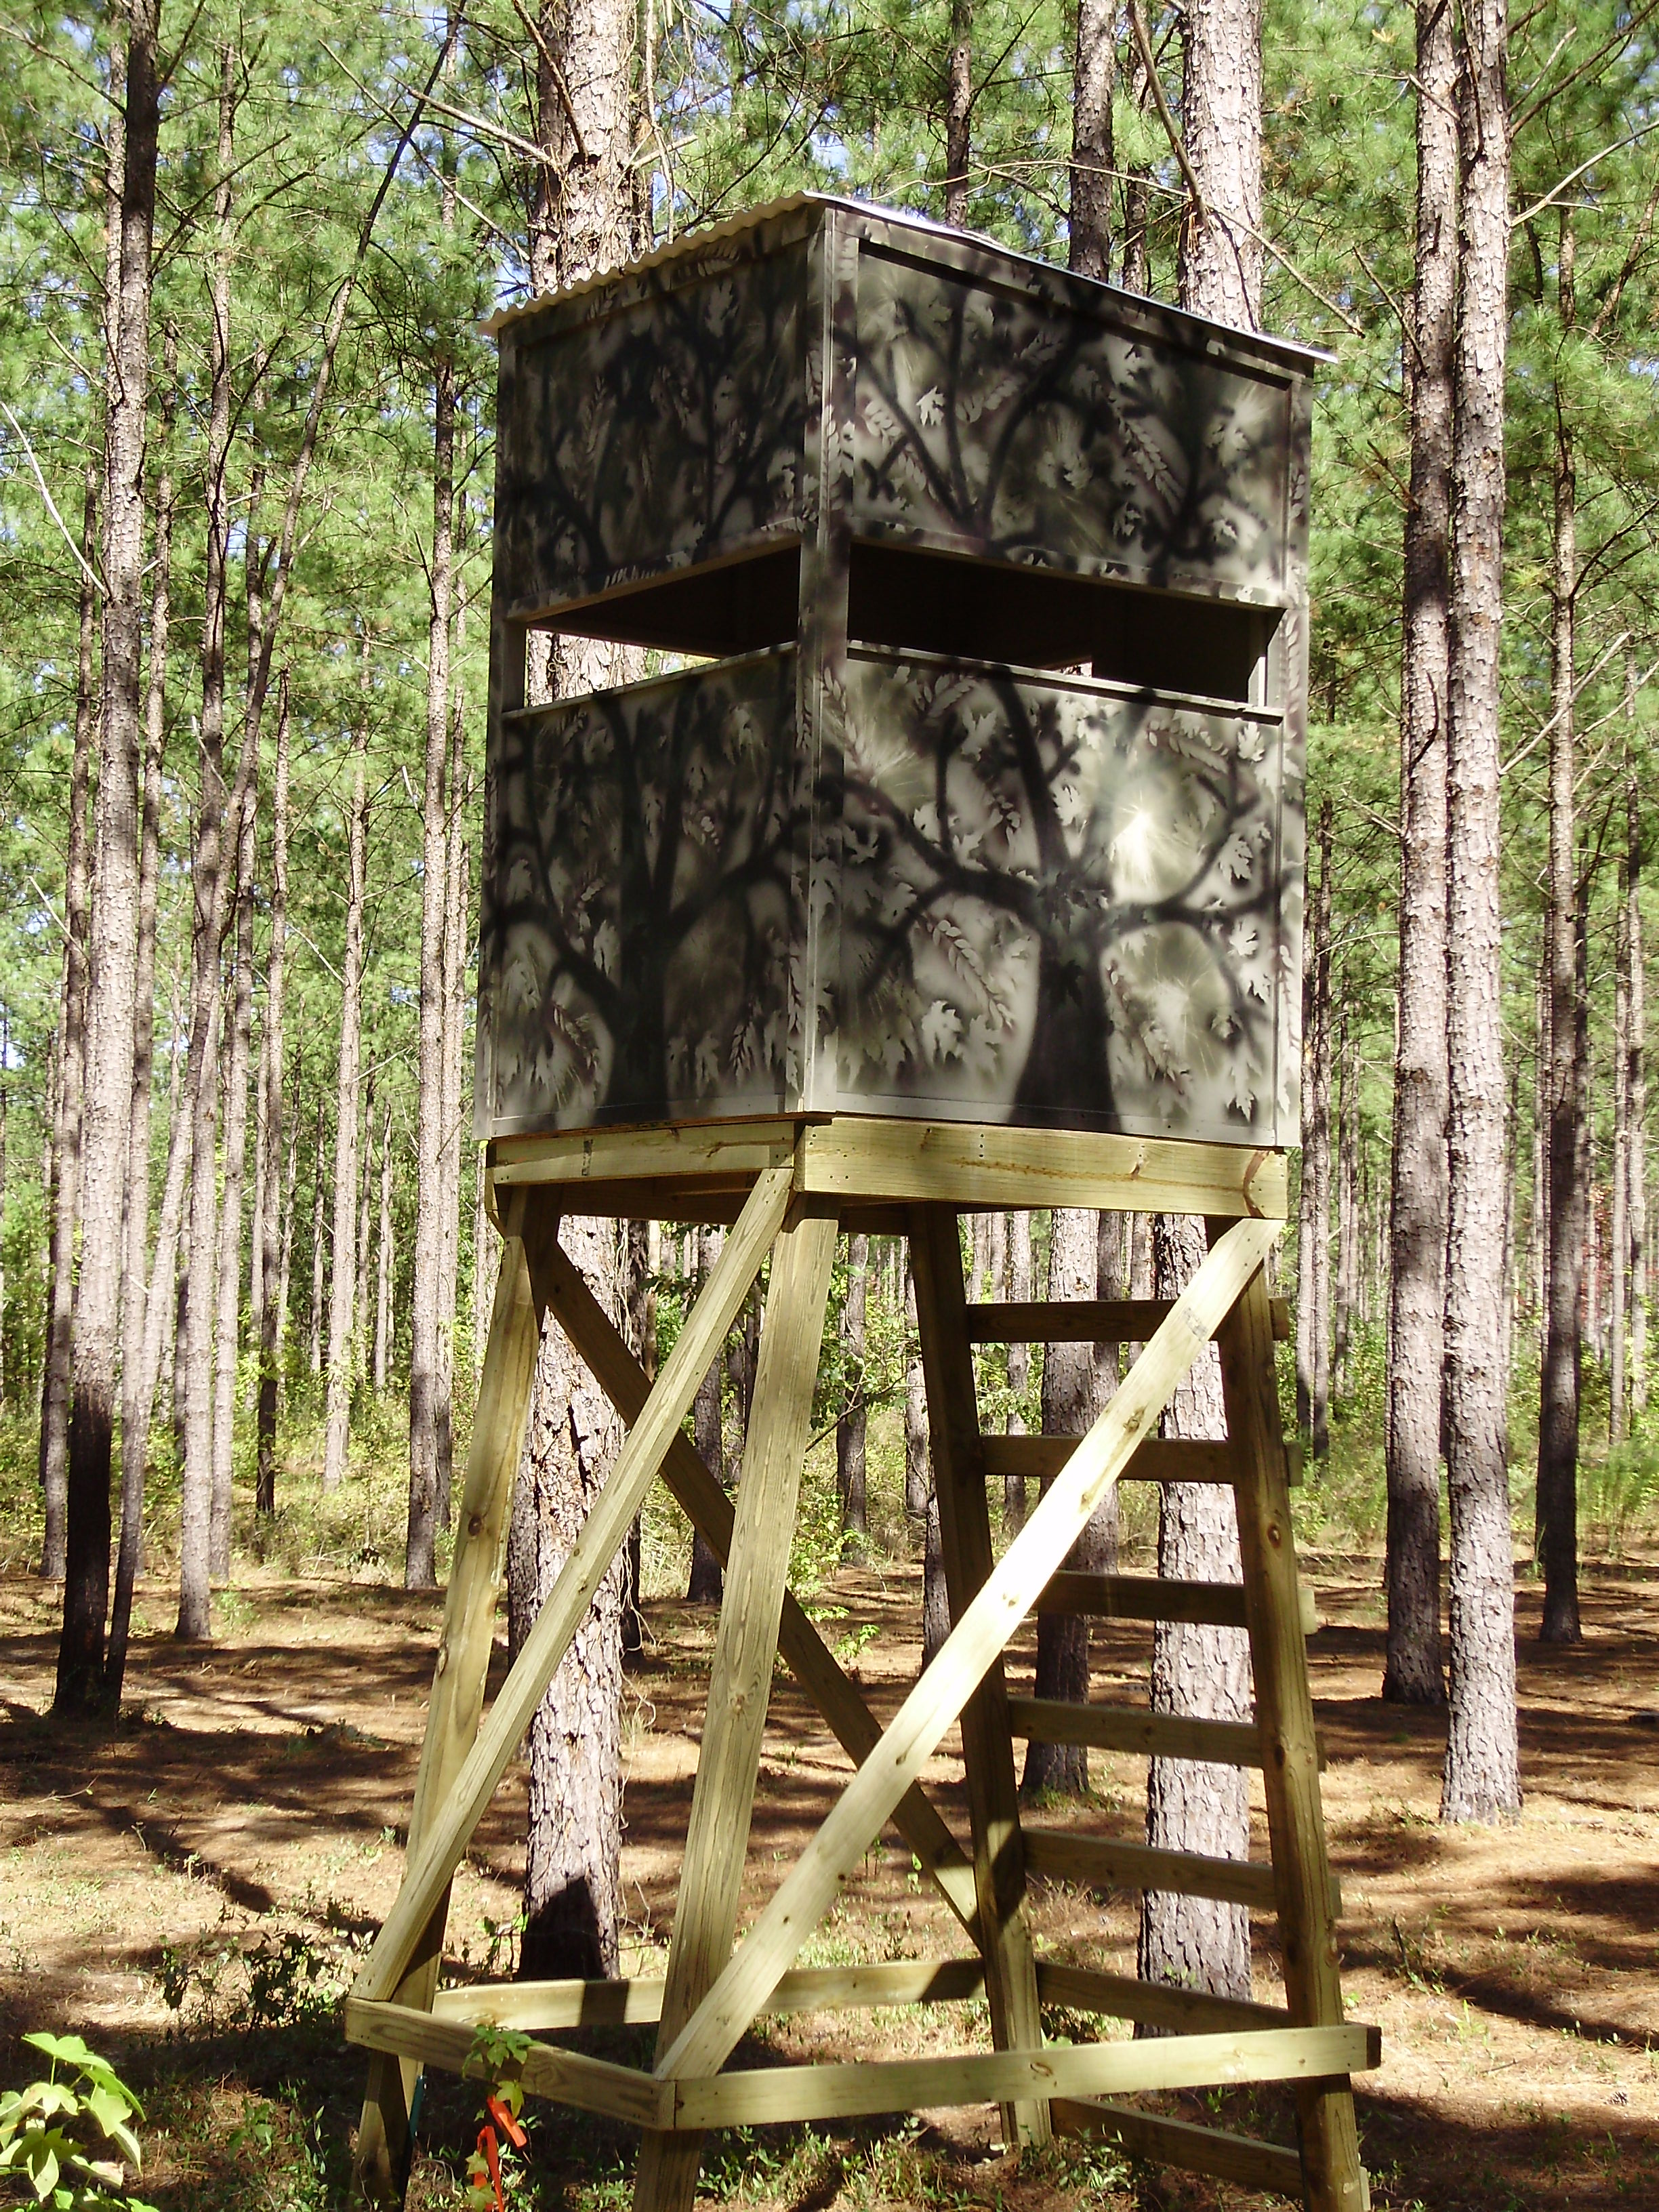 Diy tree stand plans - Olympus Digital Camera Full Resolution File Nominally Width 2448 Height 3264 Pixels